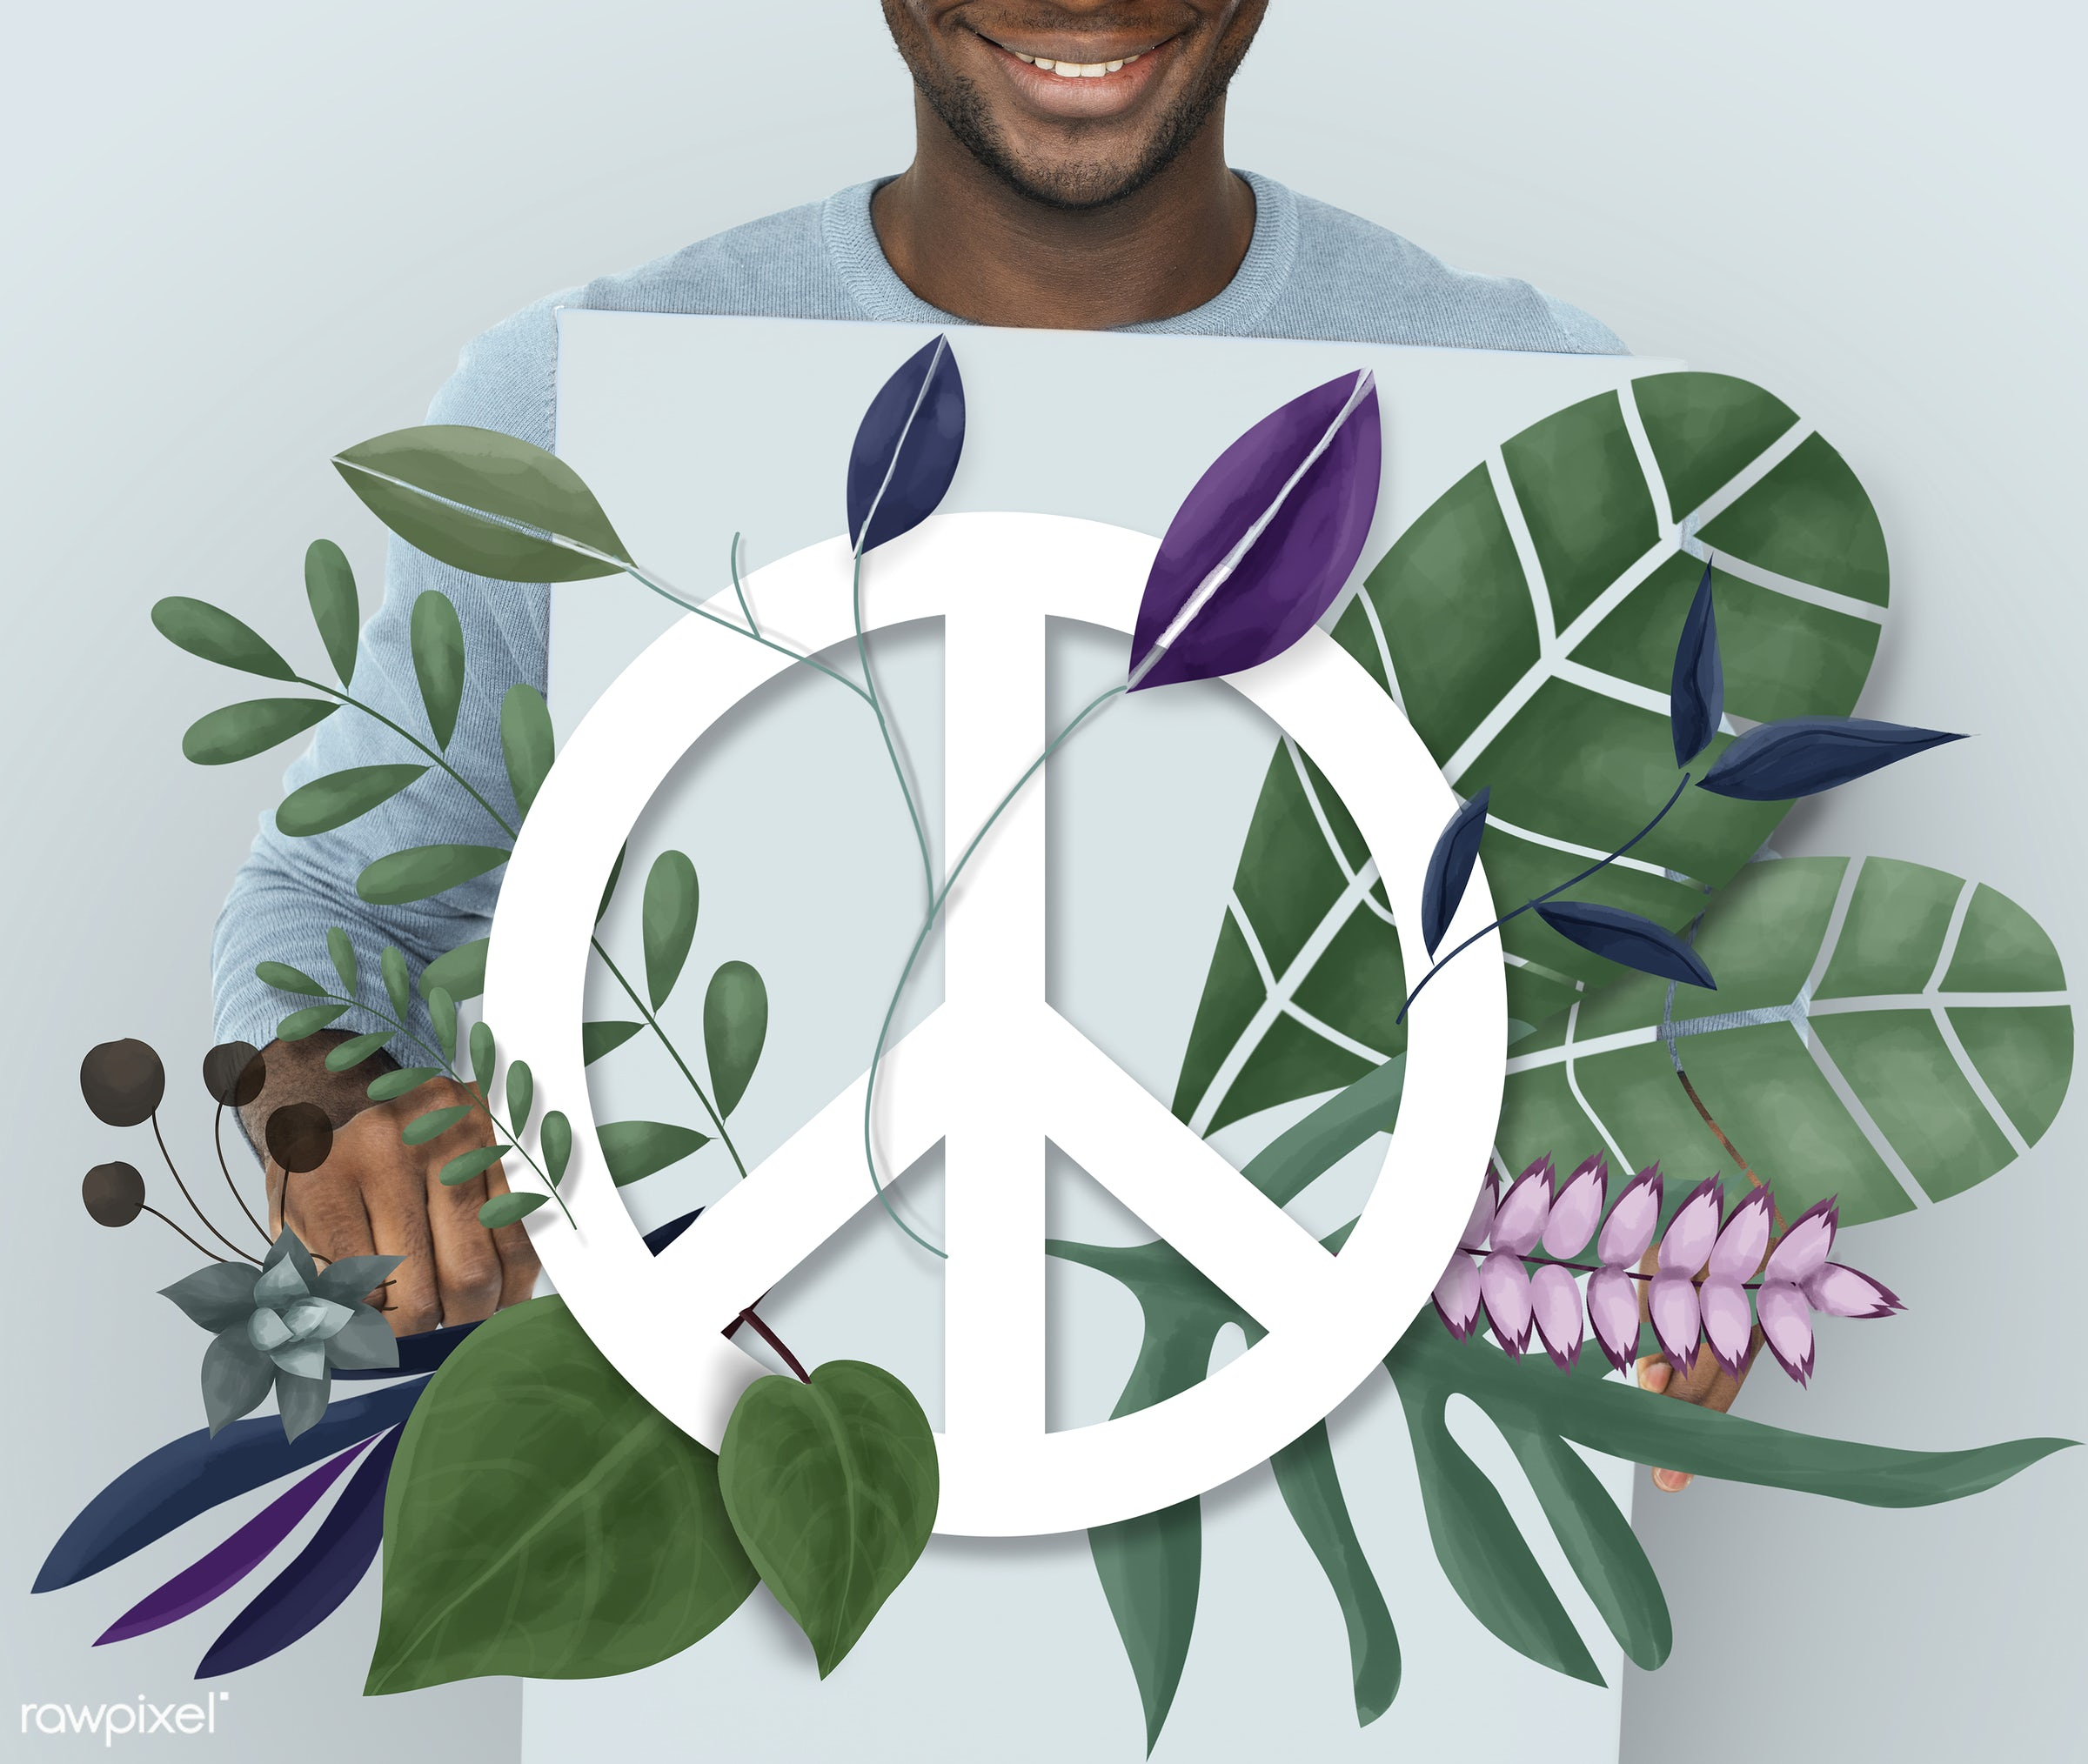 Peace Freedom Happiness High Spiritual - environment, peace, hope, face, person, world, adult, african american, candid,...